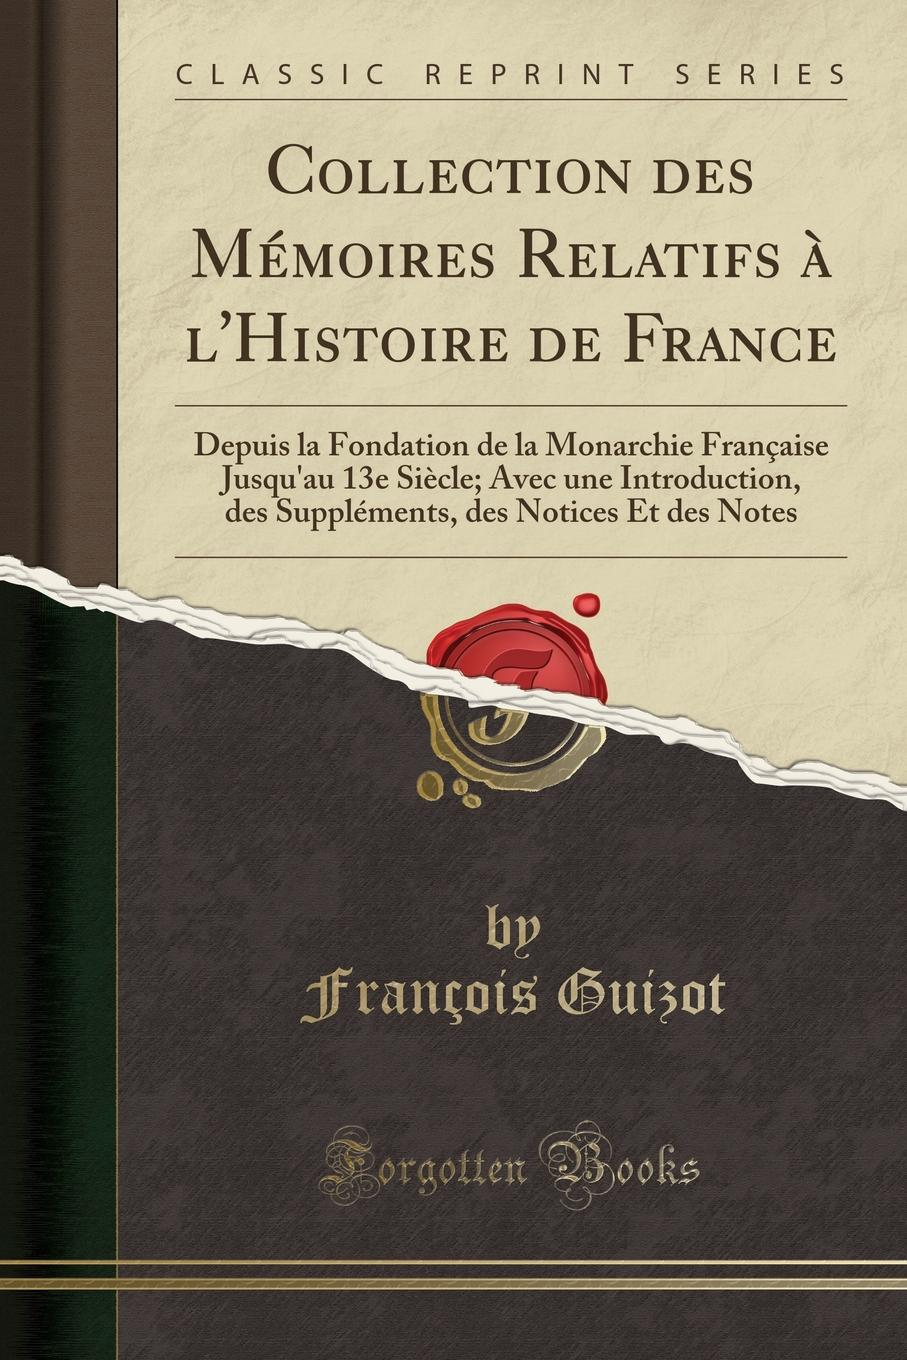 François Guizot Collection des Memoires Relatifs a l.Histoire de France. Depuis la Fondation de la Monarchie Francaise Jusqu.au 13e Siecle; Avec une Introduction, des Supplements, des Notices Et des Notes (Classic Reprint) barrow lrc 2 0 watercooling waterway board for tt view 71 tg tg rgb computer case acrylic plate compatible prime z370 a